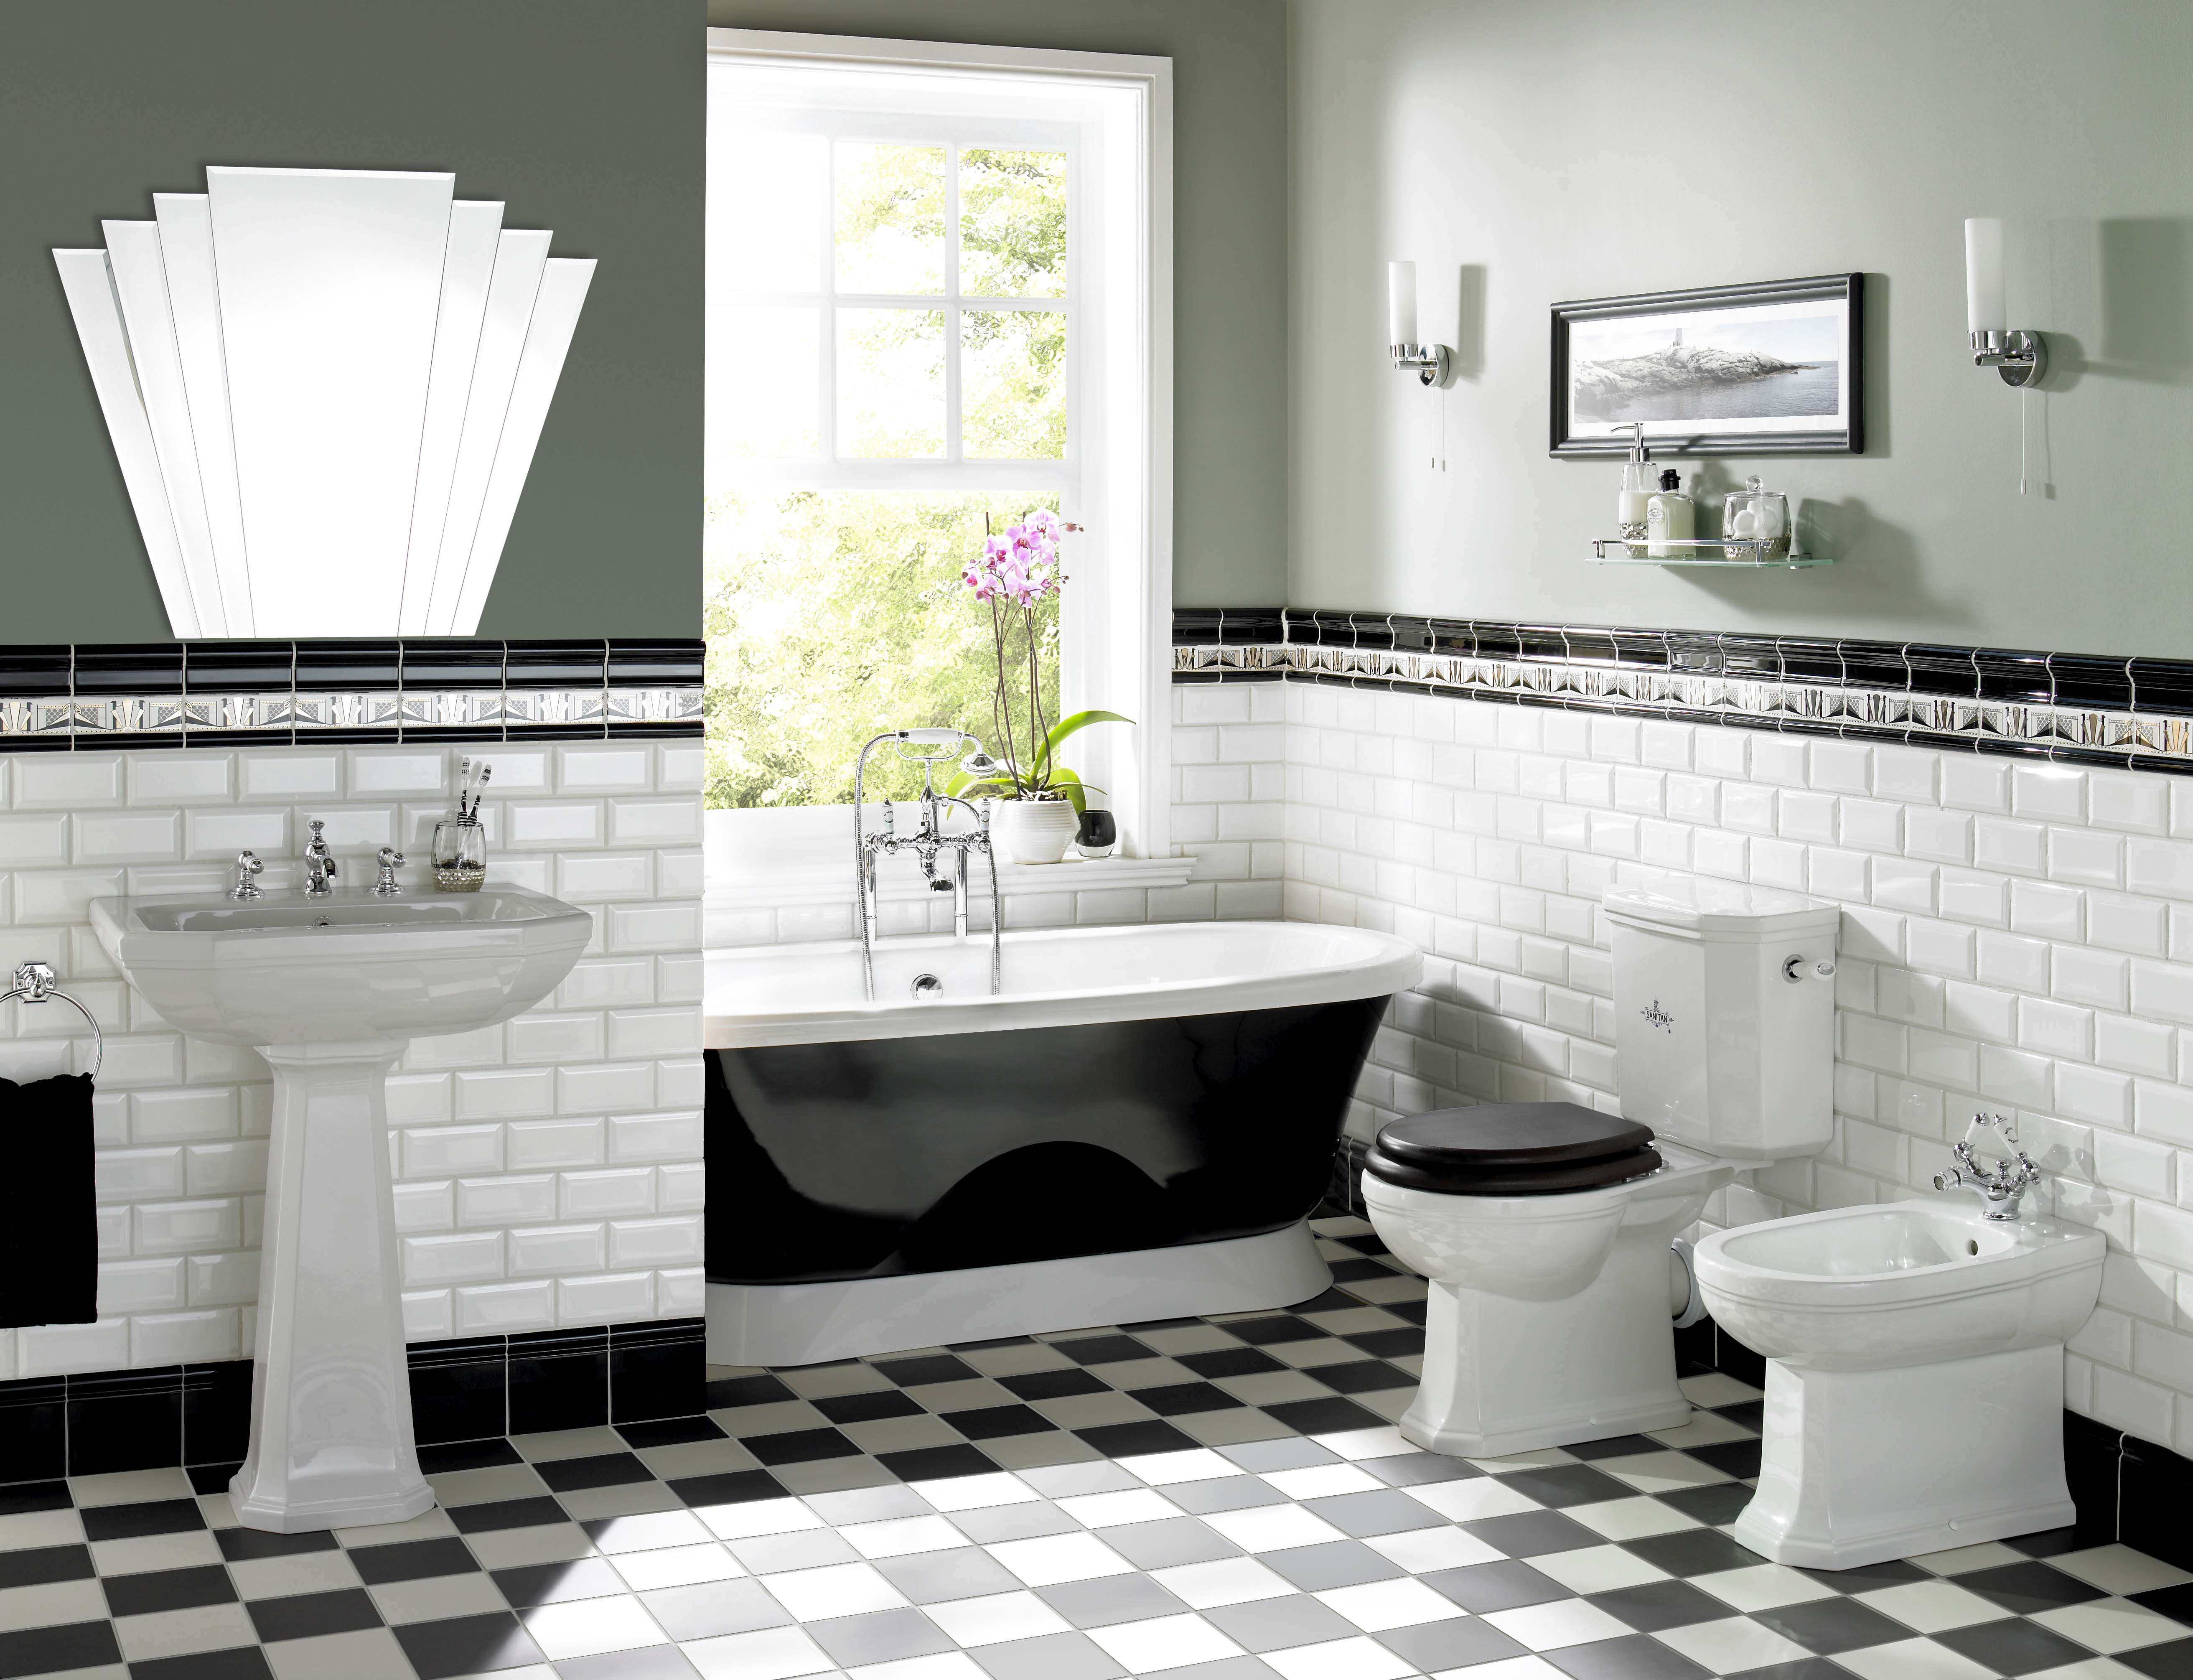 original-style-artworks-art-deco-bathroom